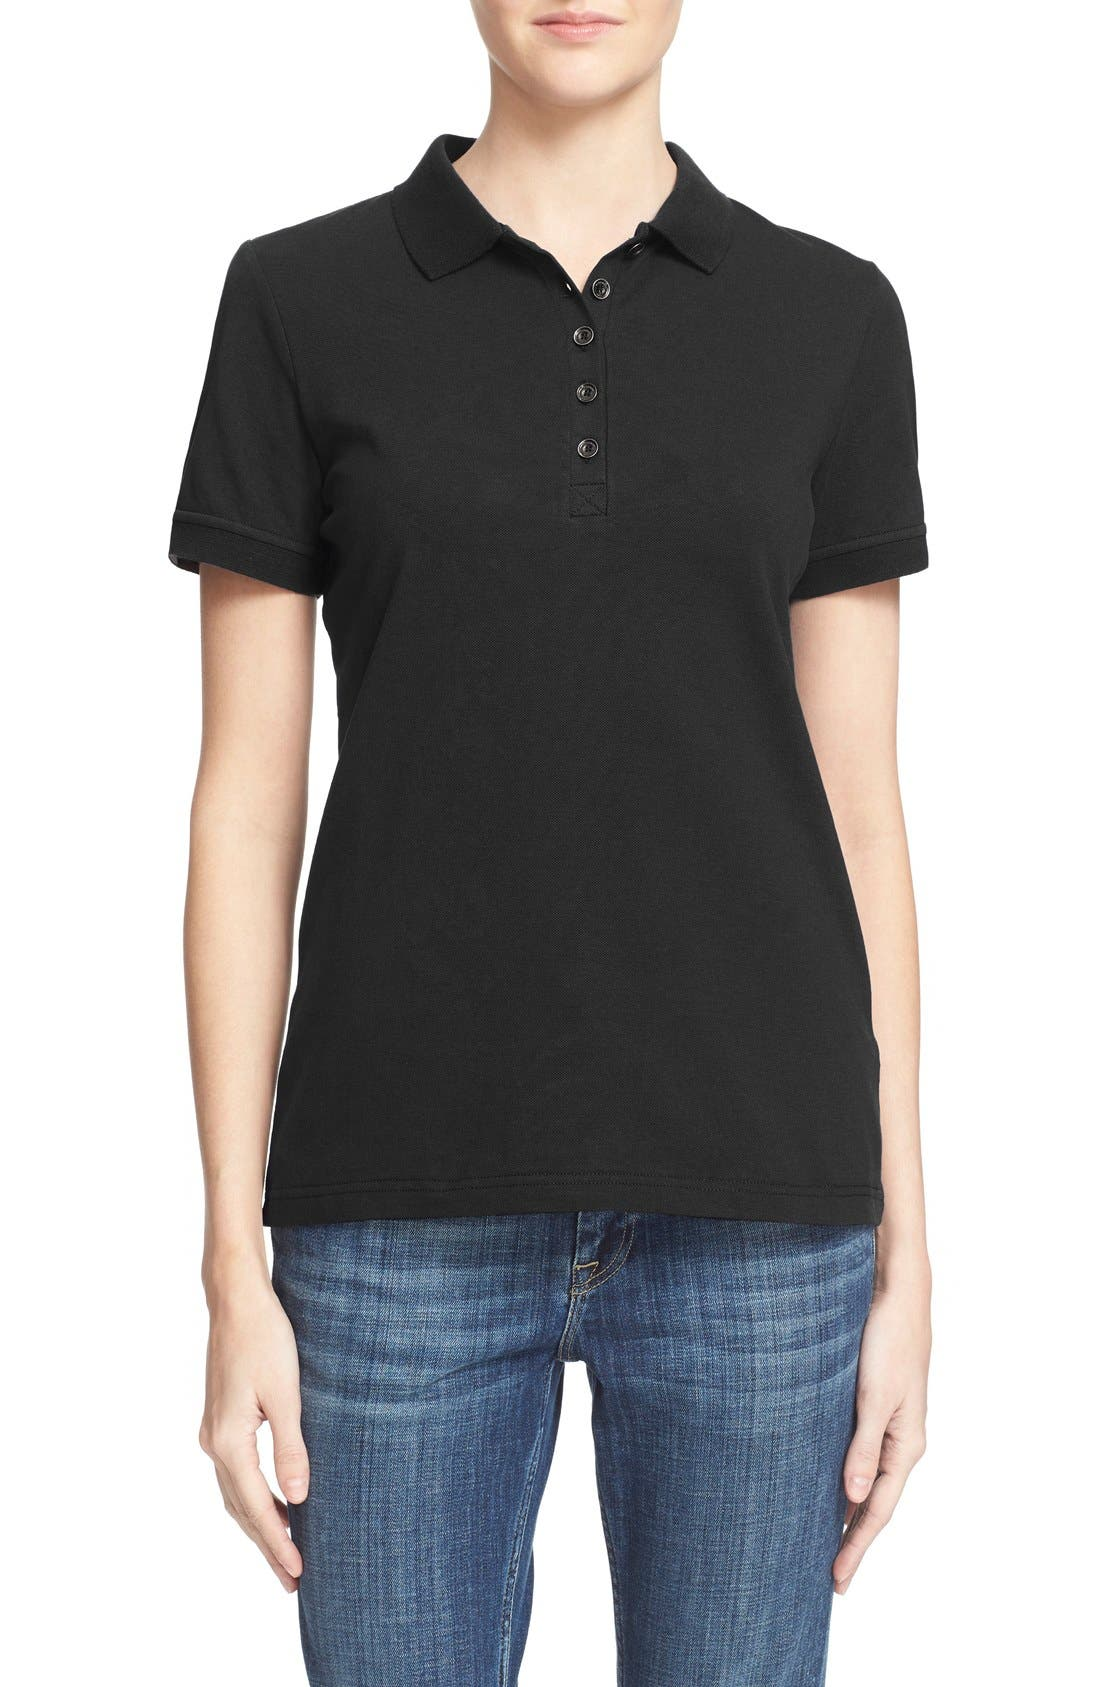 Alternate Image 1 Selected - Burberry Short Sleeve Polo